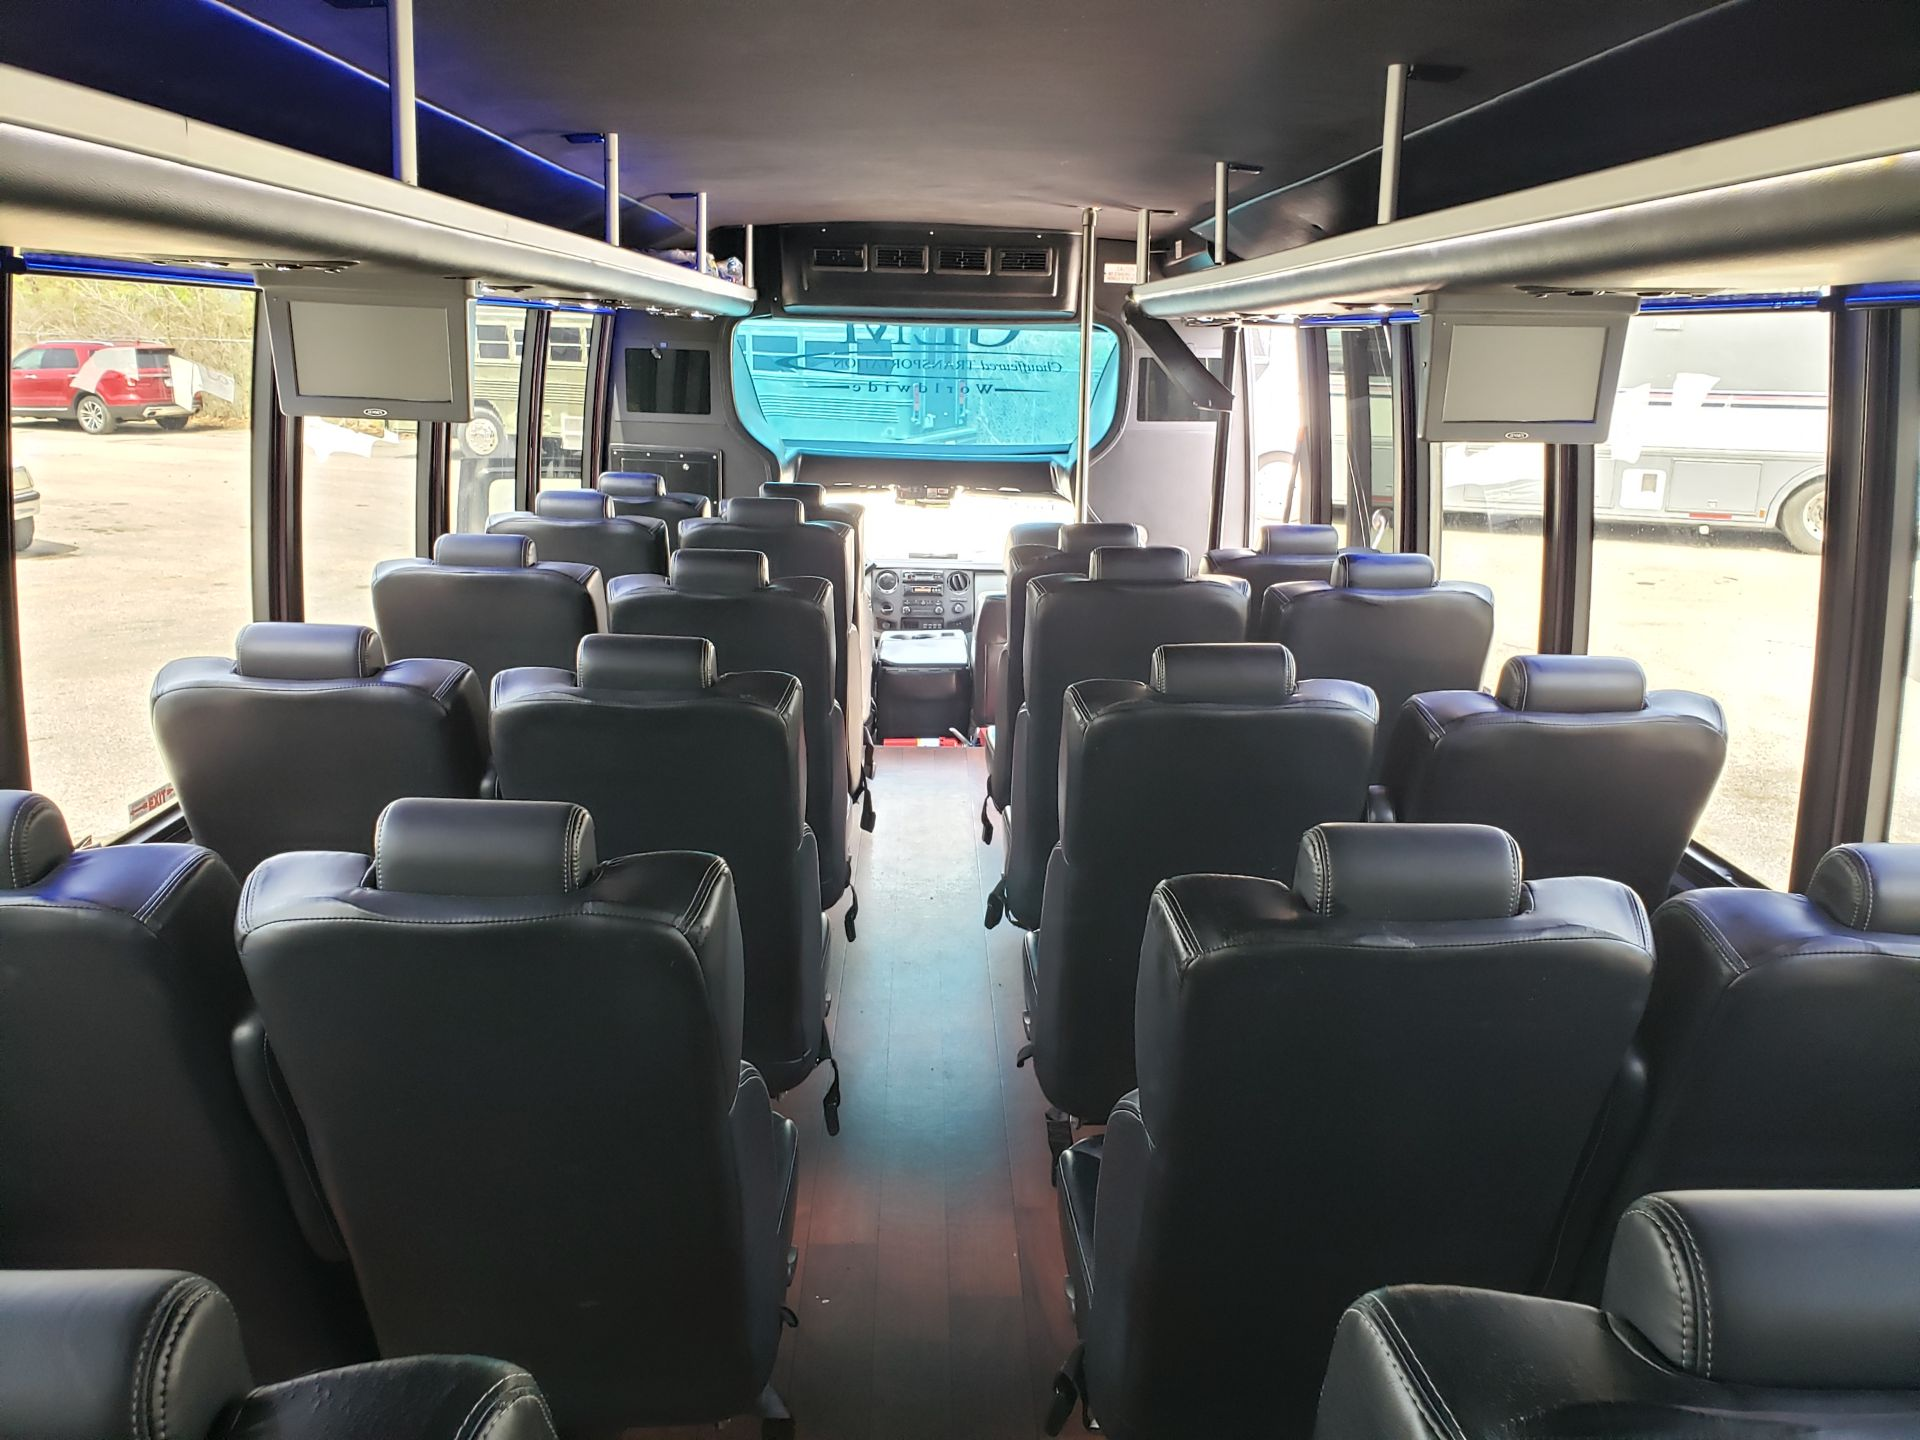 2013 Ford F550SD XL Grech Motors 33-Pass Shuttle Bus - Image 11 of 17